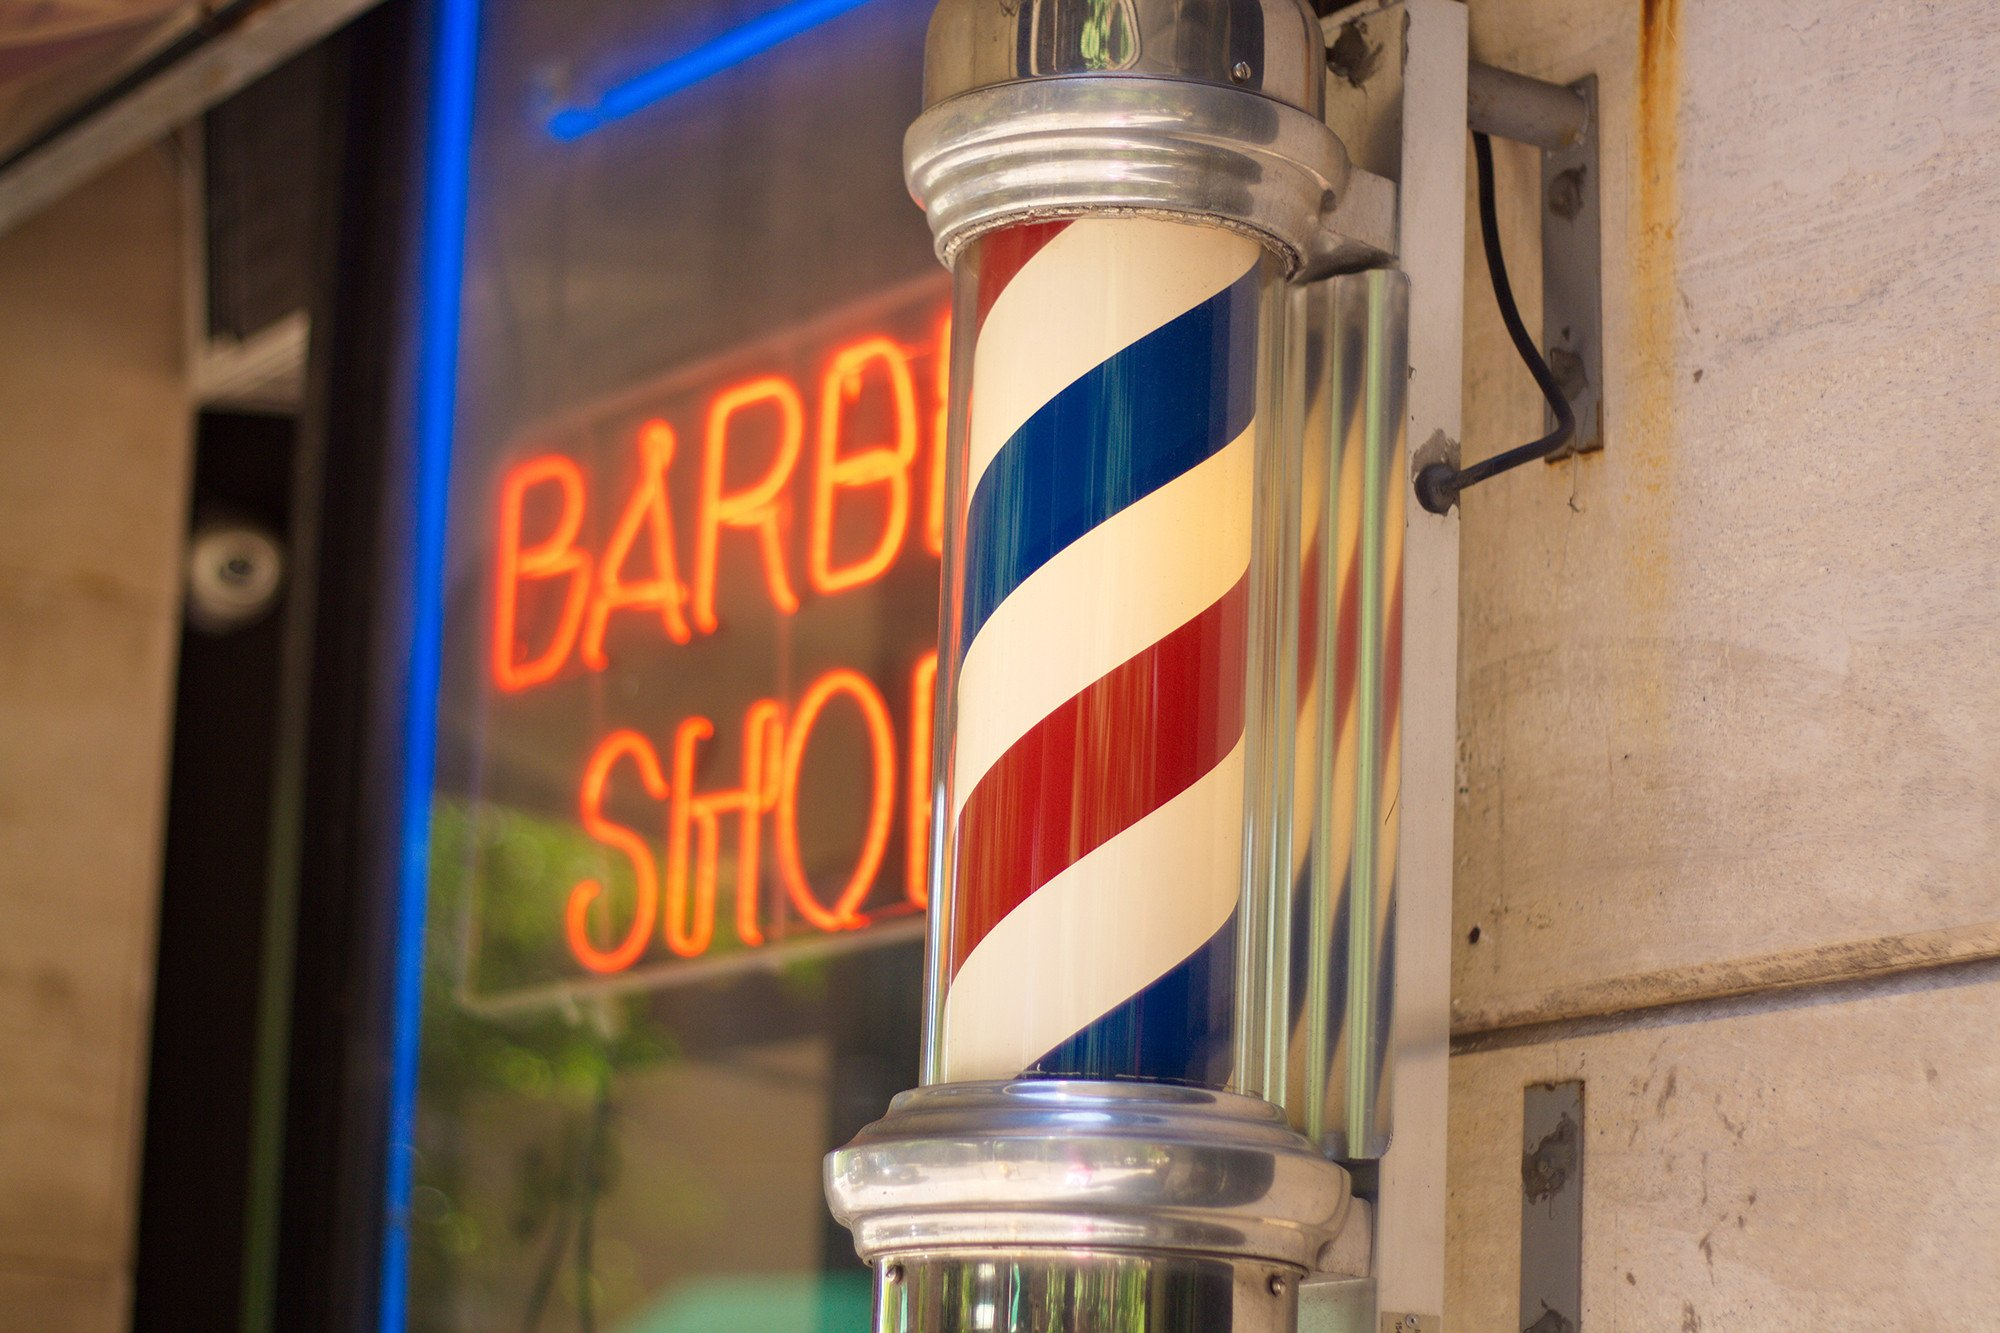 Customer allegedly beat barber with bat after skipping payment